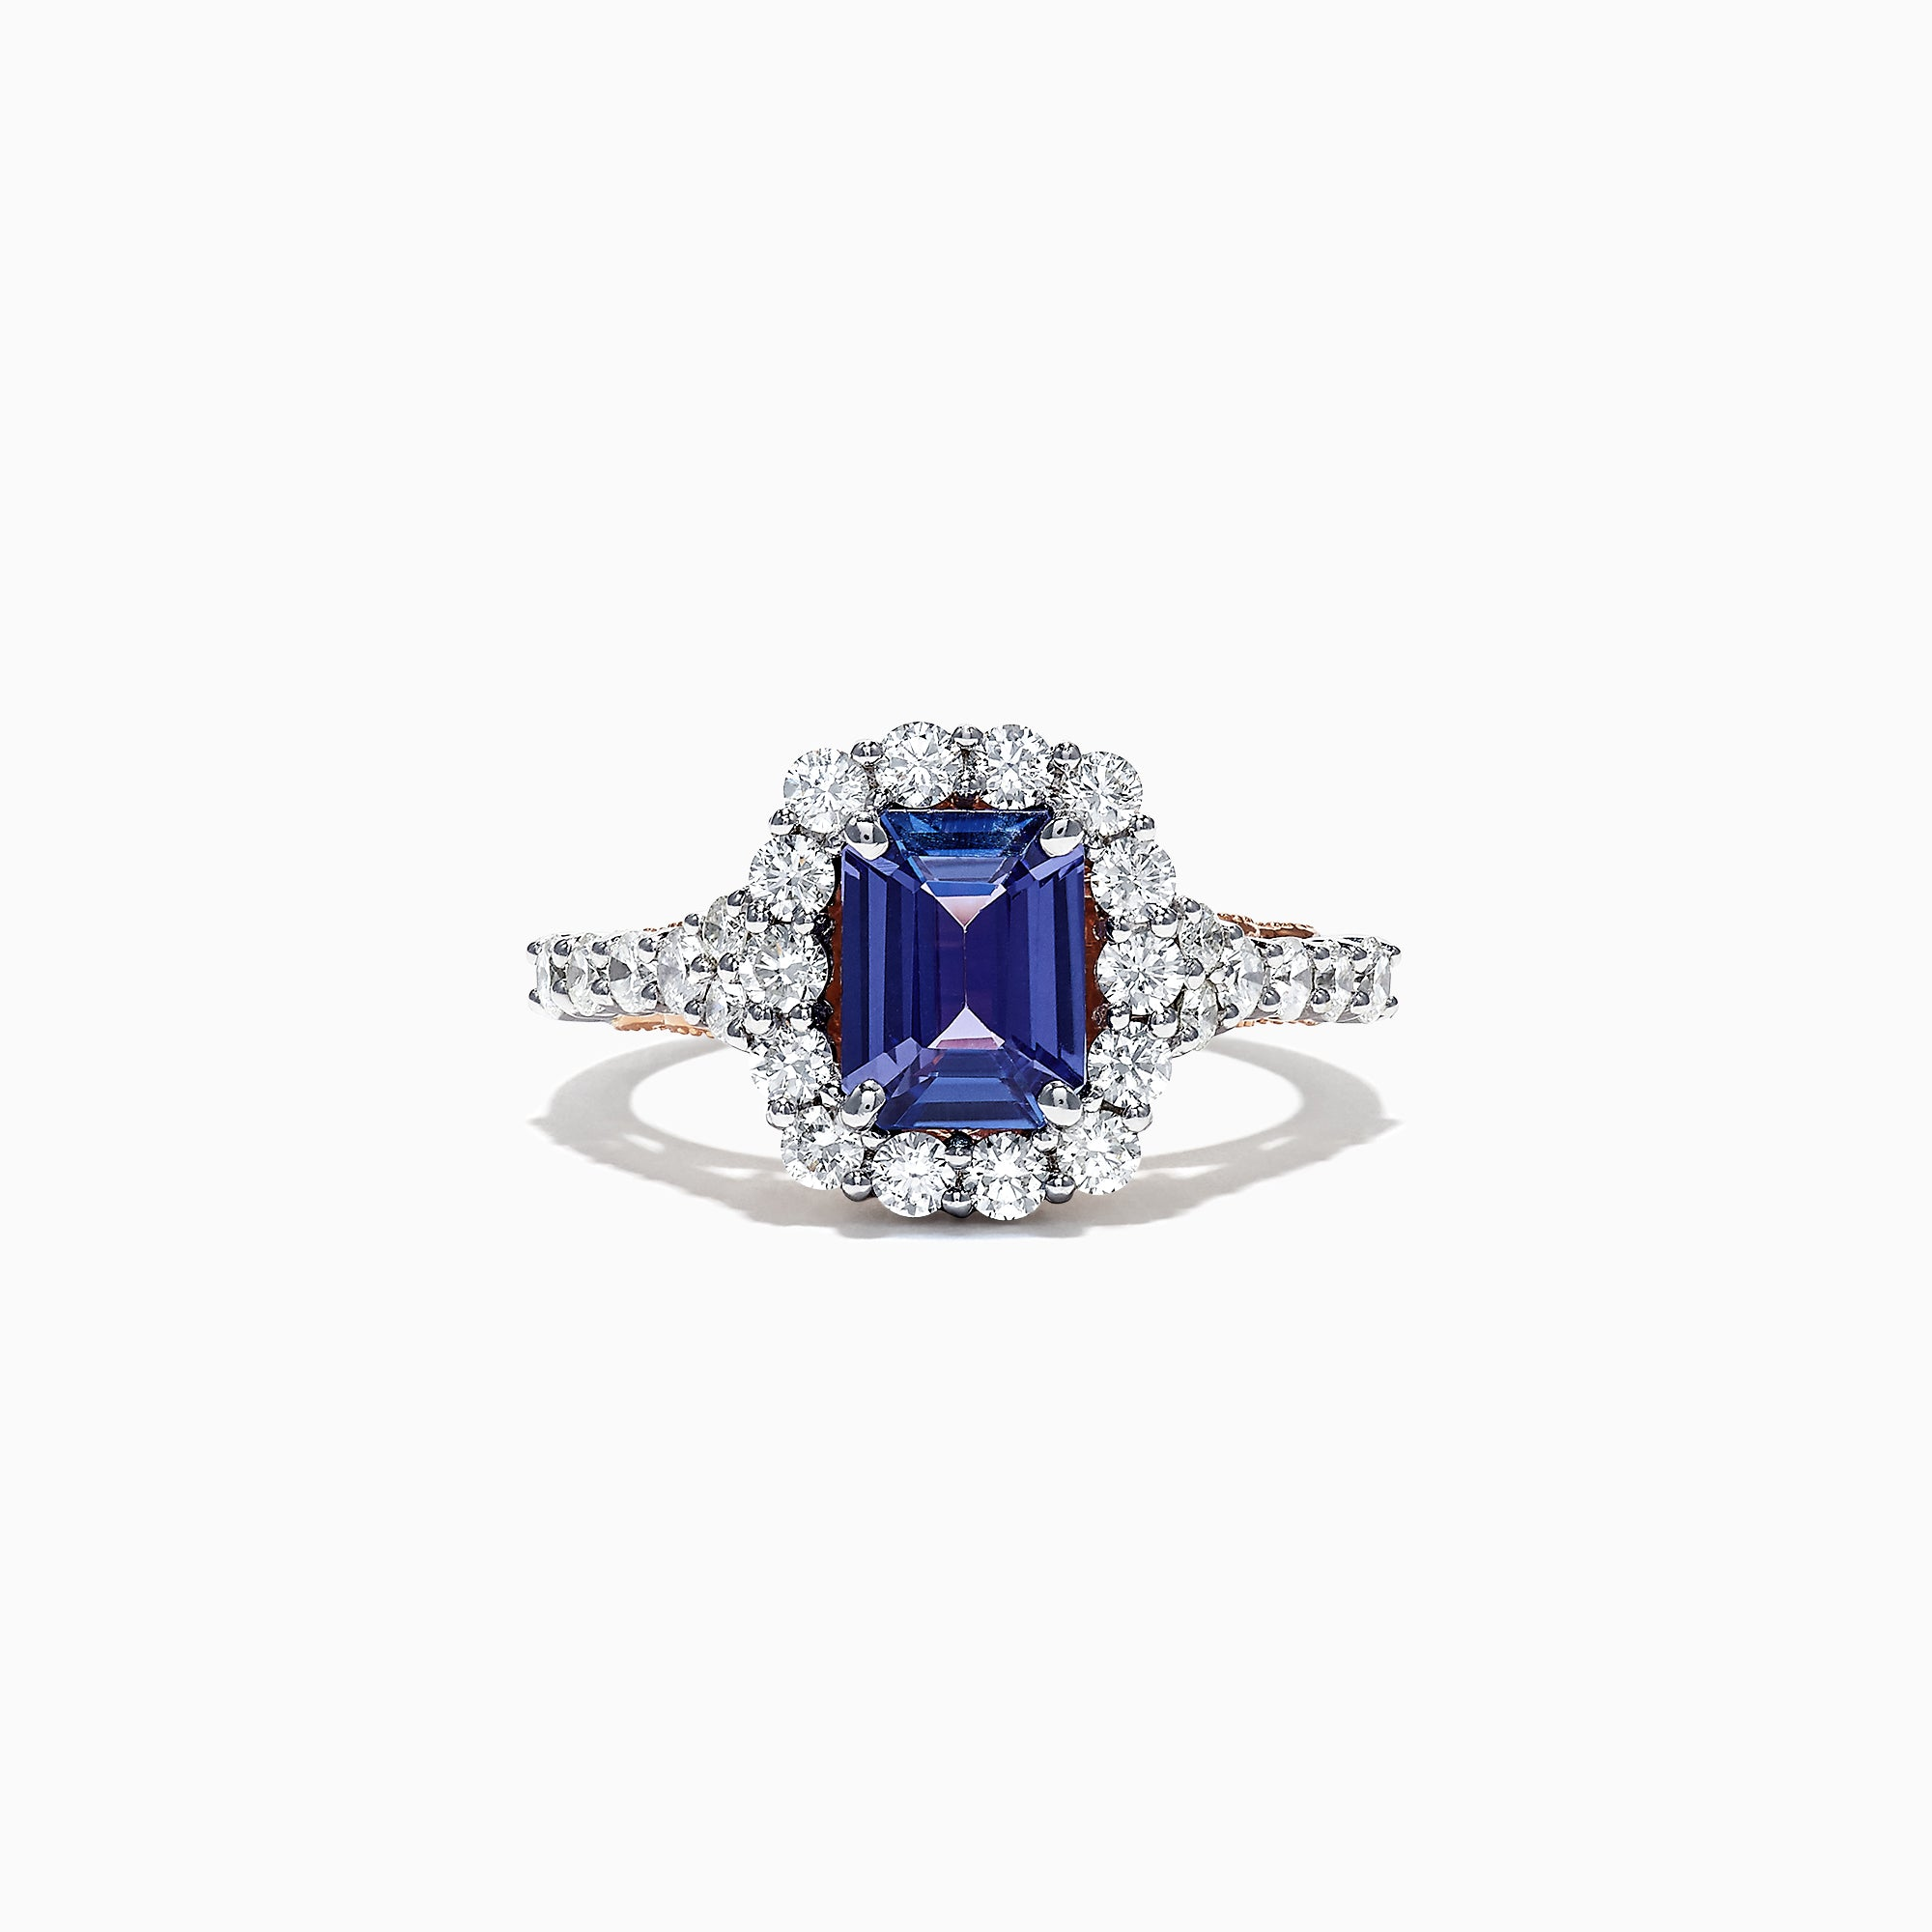 Effy 14K Two Tone Gold Emerald Cut Tanzanite and Diamond Ring, 2.32 TCW